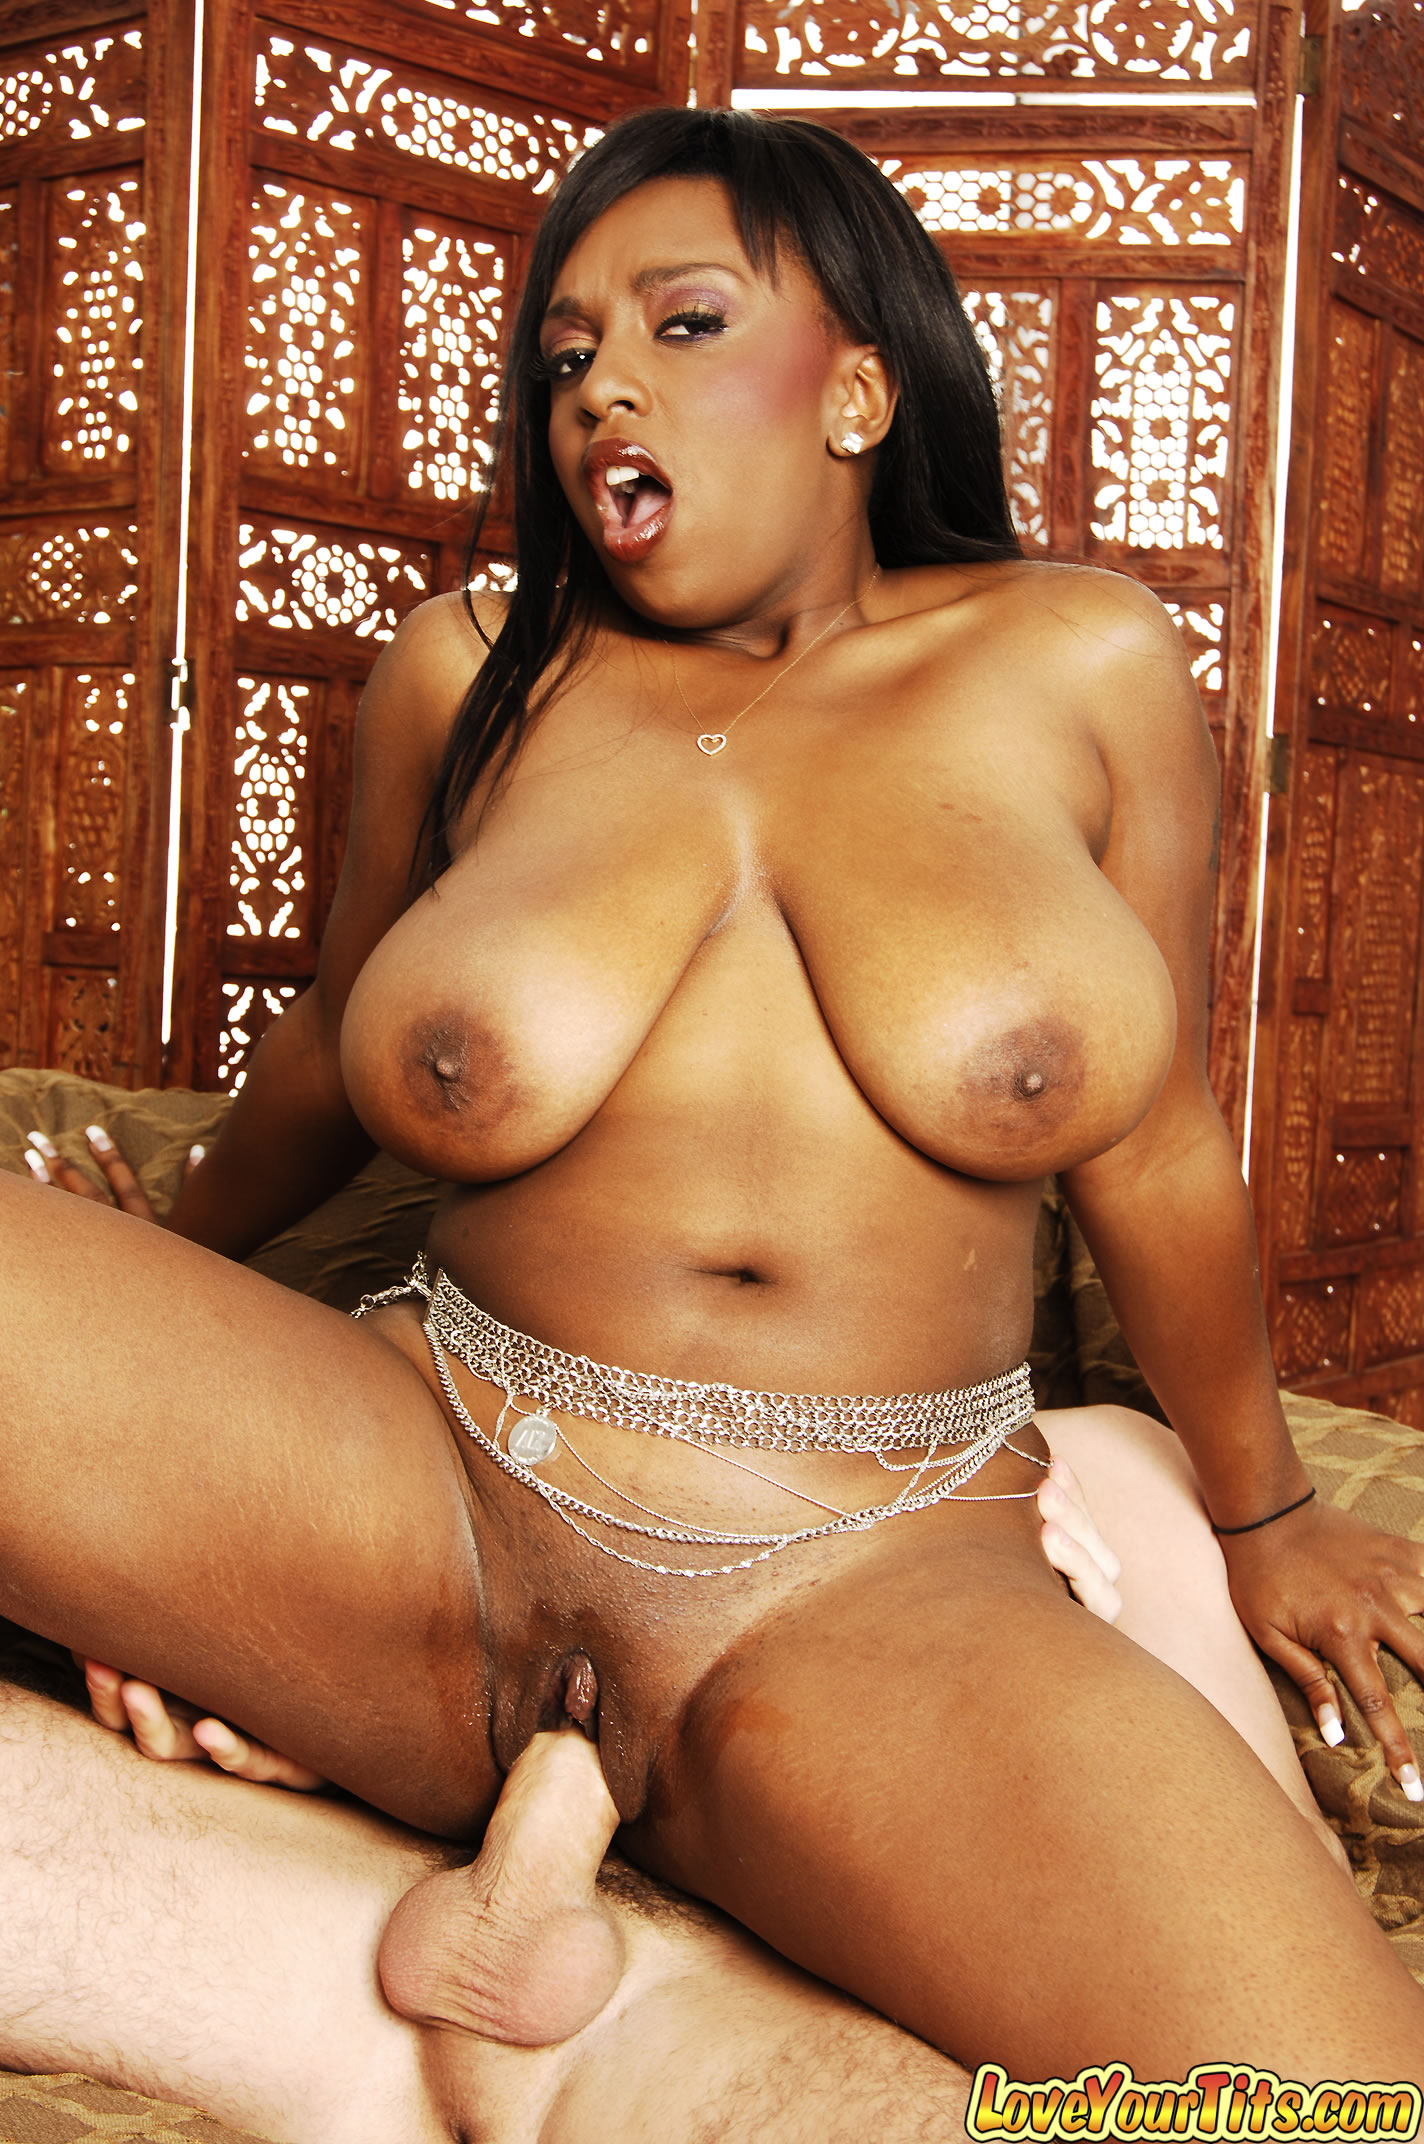 Huge Black Boobs Naked-3746